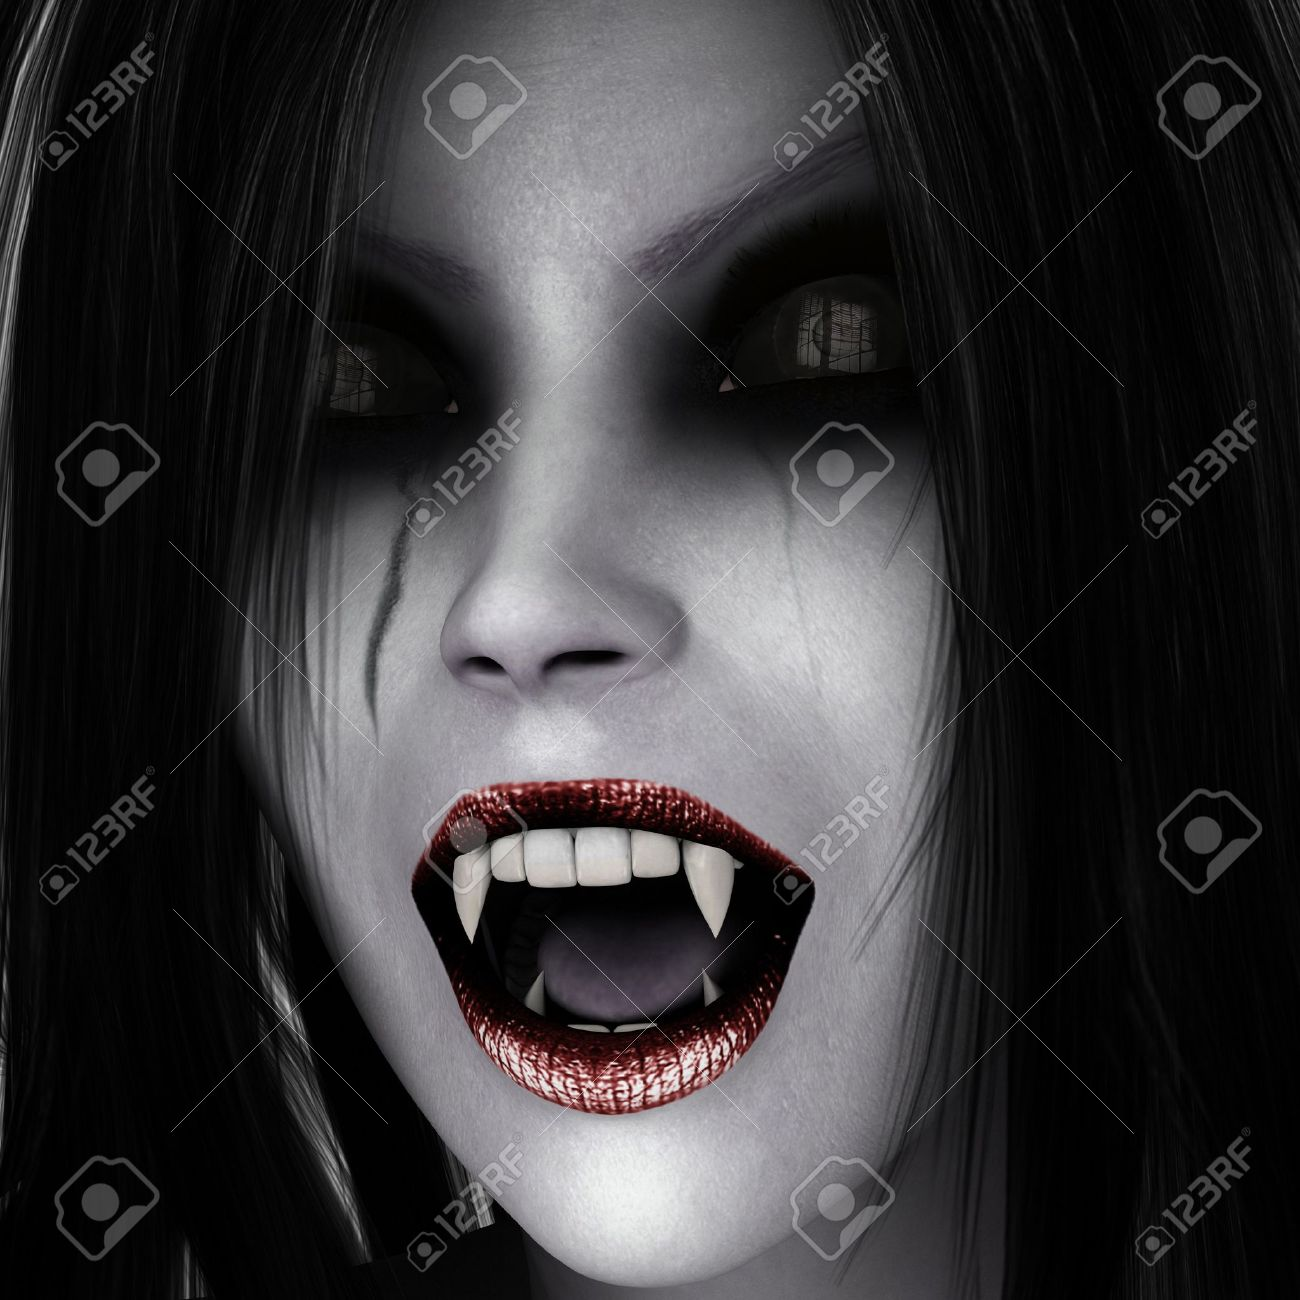 dracula stock photo, picture and royalty free image. image 12034758.